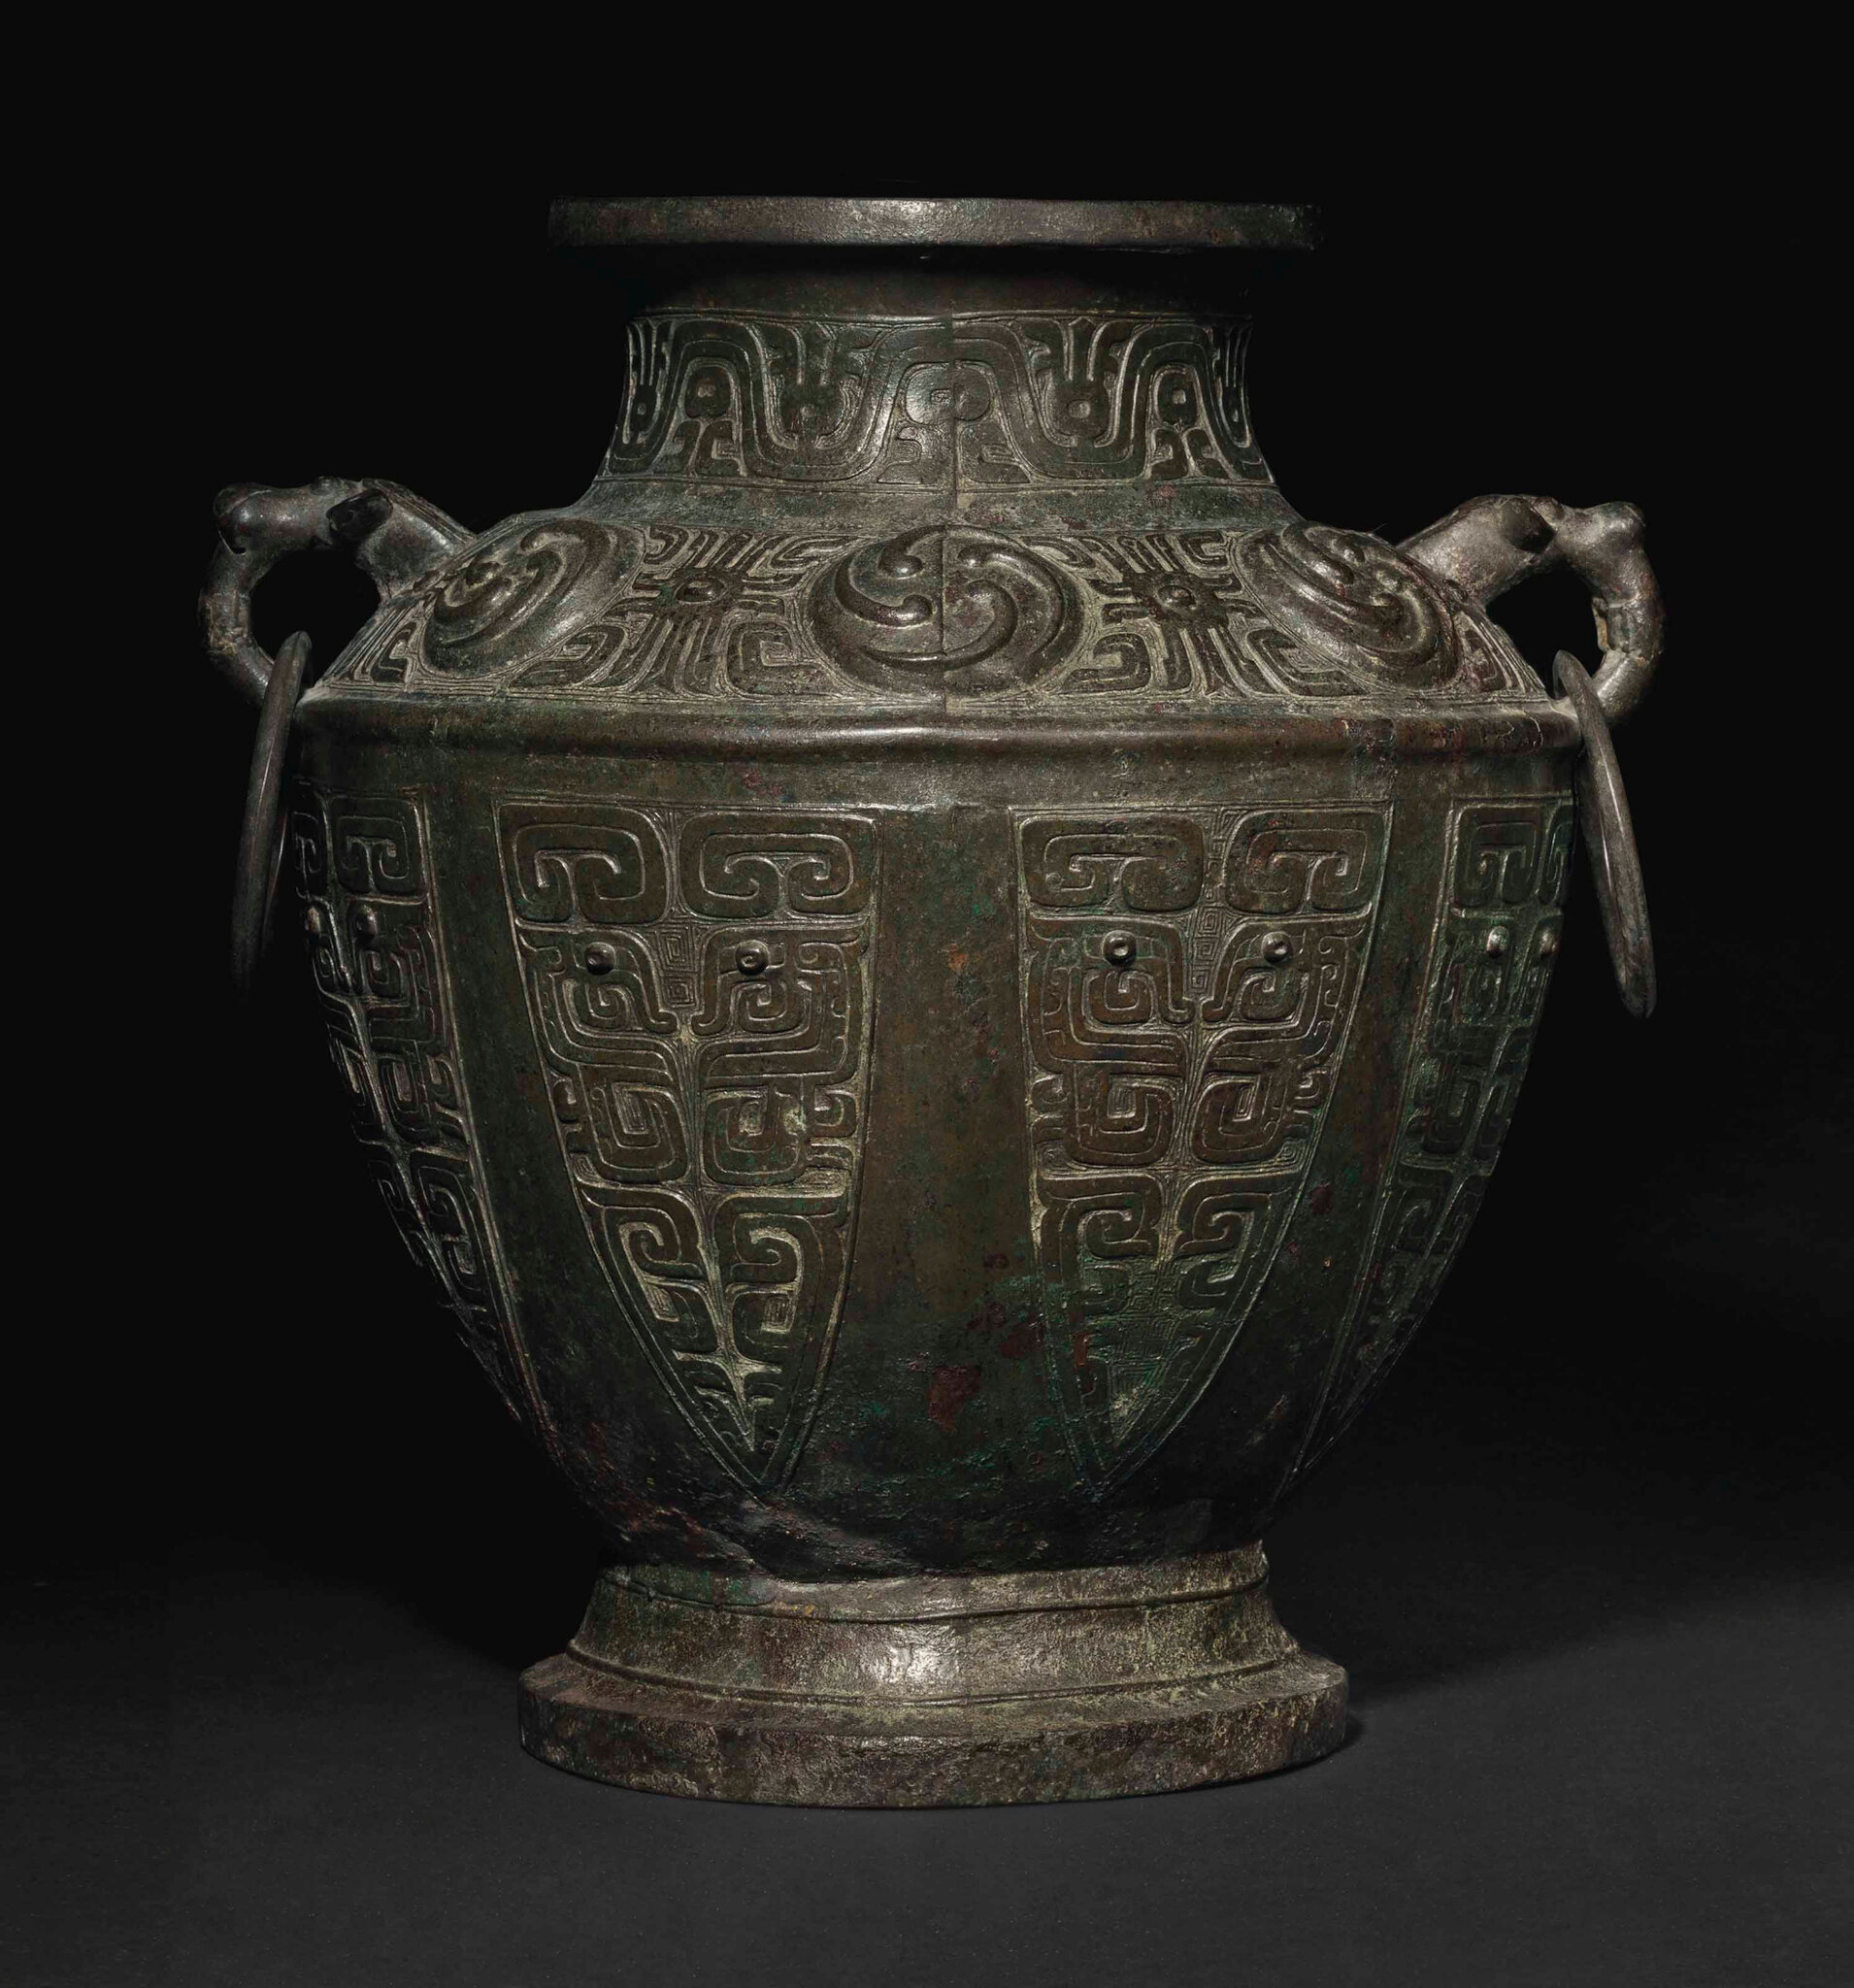 A very rare and important large bronze ritual wine vessel lei a very rare and important large bronze ritual wine vessel lei middle western zhou dynasty 10th century bc buycottarizona Choice Image